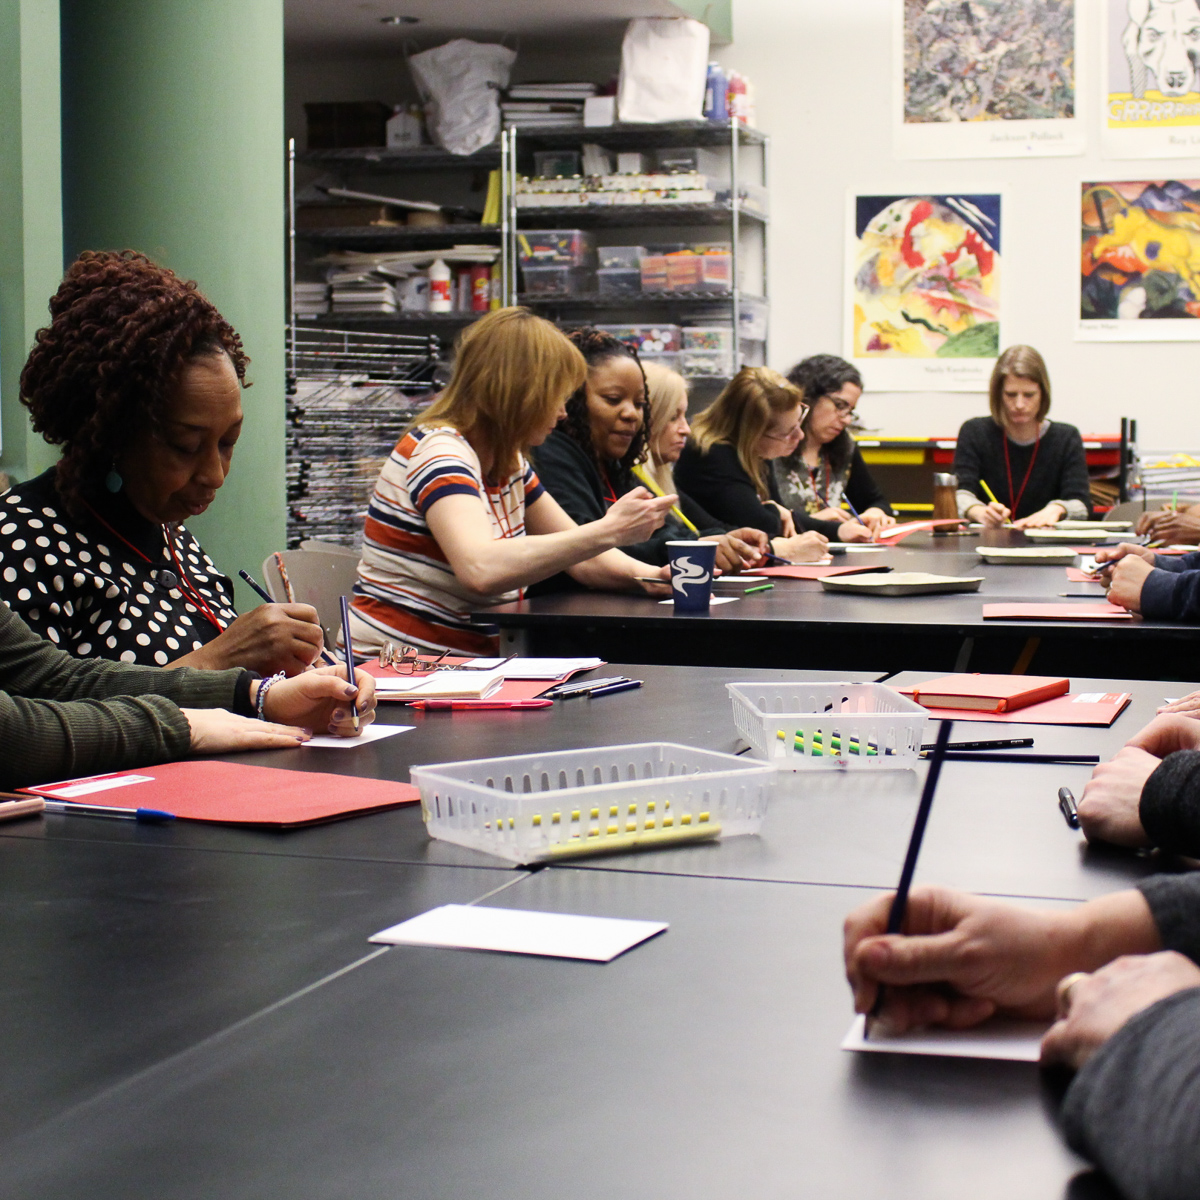 Professional Learning - CAE is dedicated to improving the quality of teaching and learning in the arts through professional development. We give principals, classroom teachers, in-school arts specialists and teaching artists the knowledge, skills and resources they need to transform their schools.